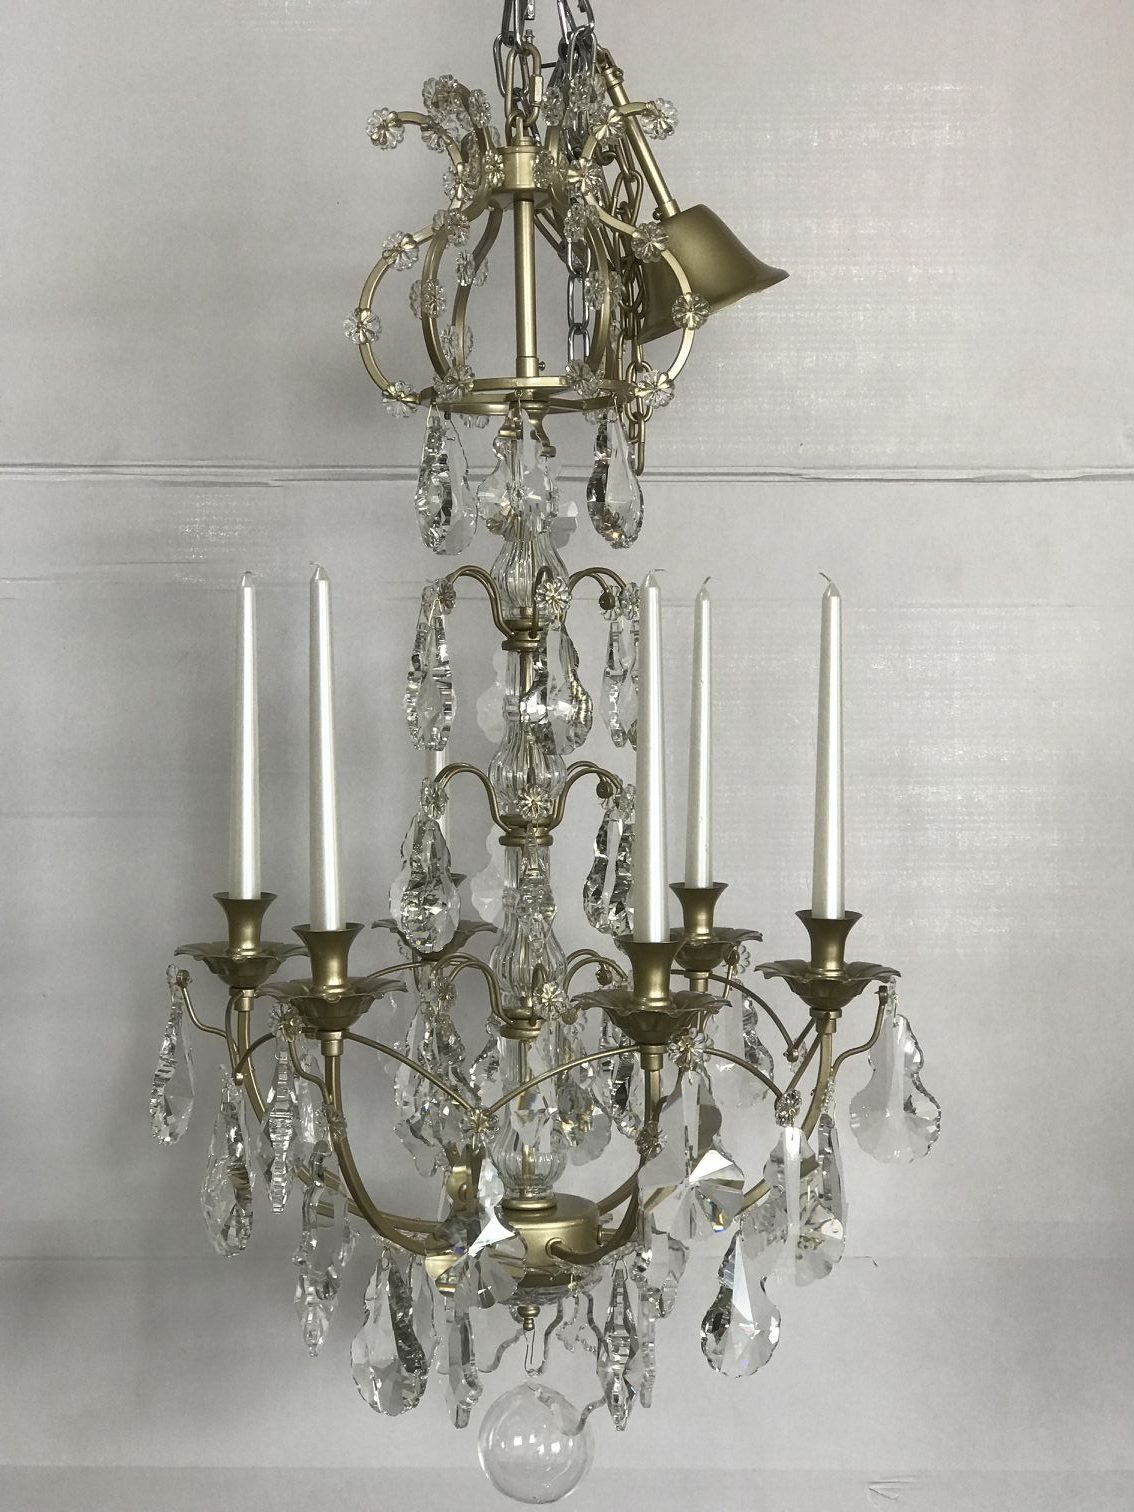 antique chandelier-1